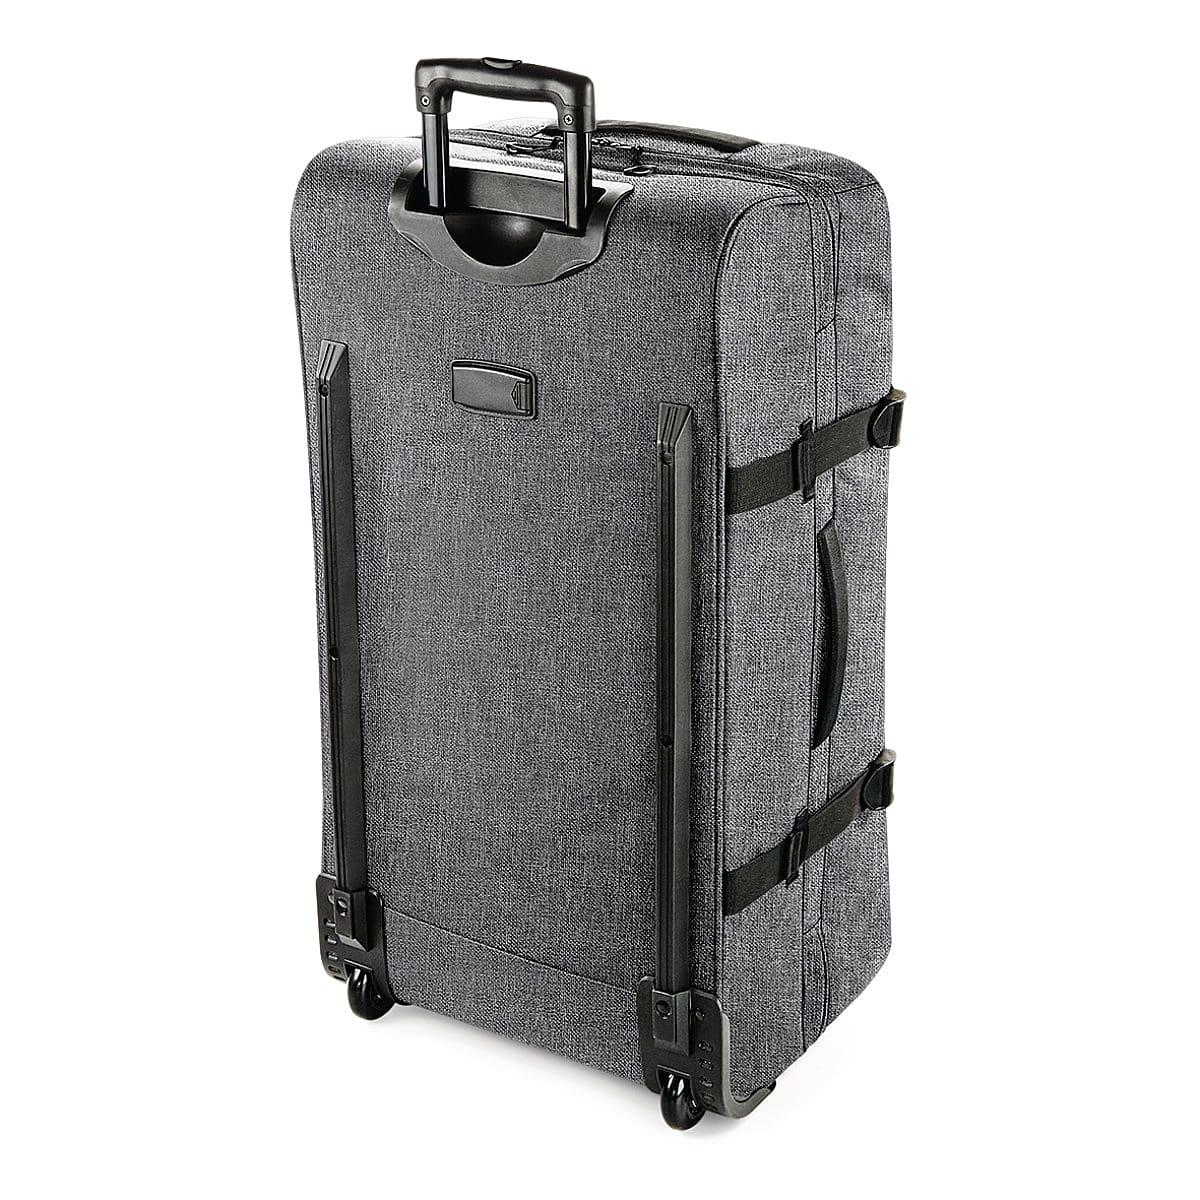 Bagbase Escape Check In Wheelie in Grey Marl (Product Code: BG483)